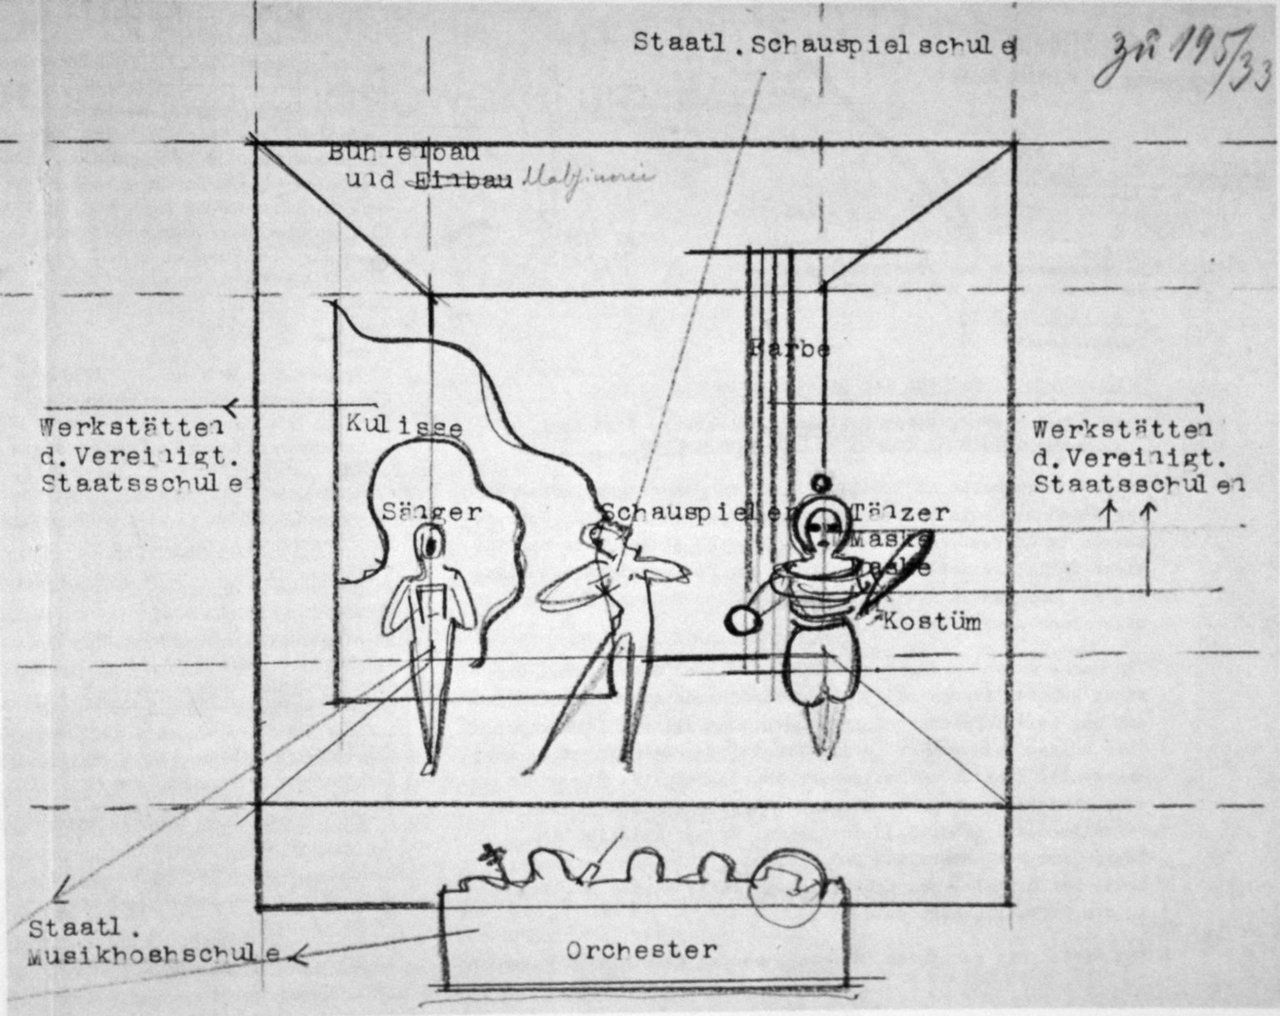 slcvisualresources: Oskar Schlemmer, Triadic Ballet Set and Costume Design Sketch (on a letter to Hans Poelzig), January 25, 1933.